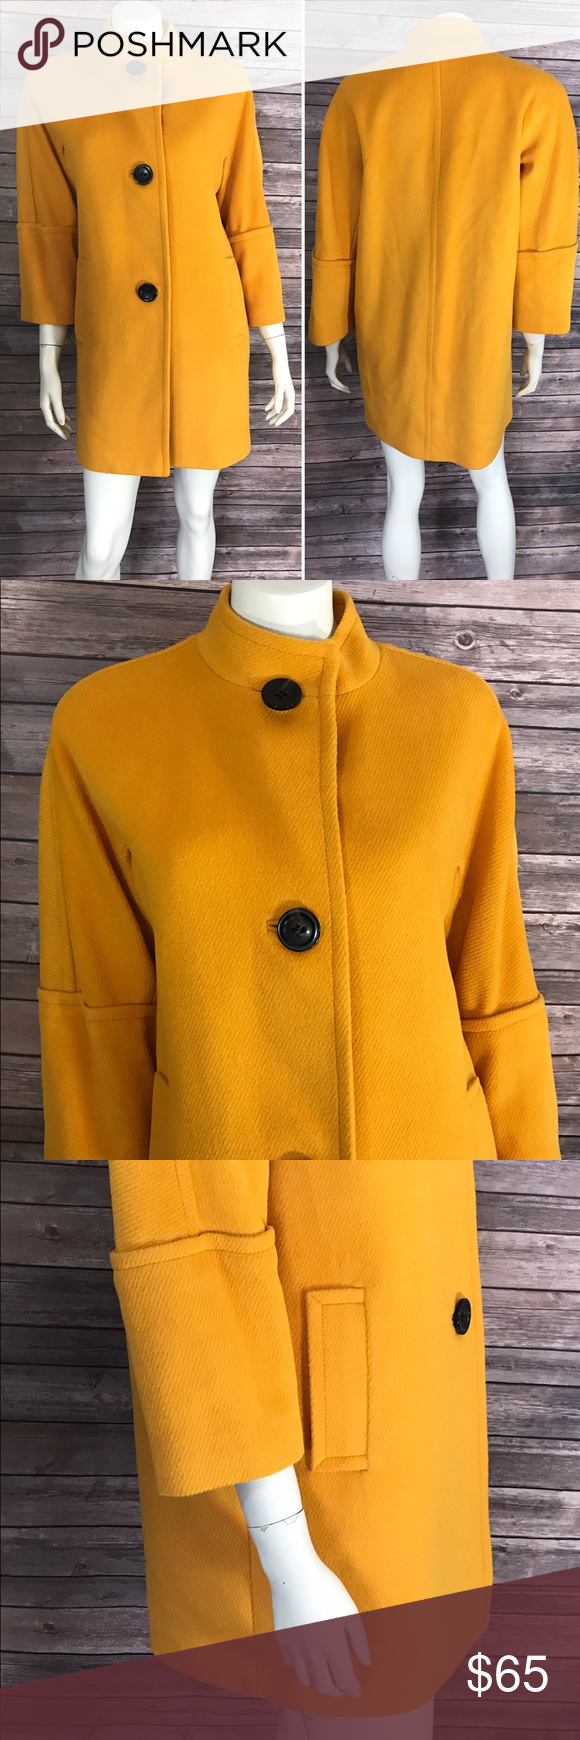 NWOT Talbots Coat 6 Mustard Yellow 3/4 Sleeve Measurements: (in inches) - Underarm to underarm: 20.5 - Length: 33.5 - Sleeve: 19.5  Excellent Condition, never worn Talbots Jackets & Coats